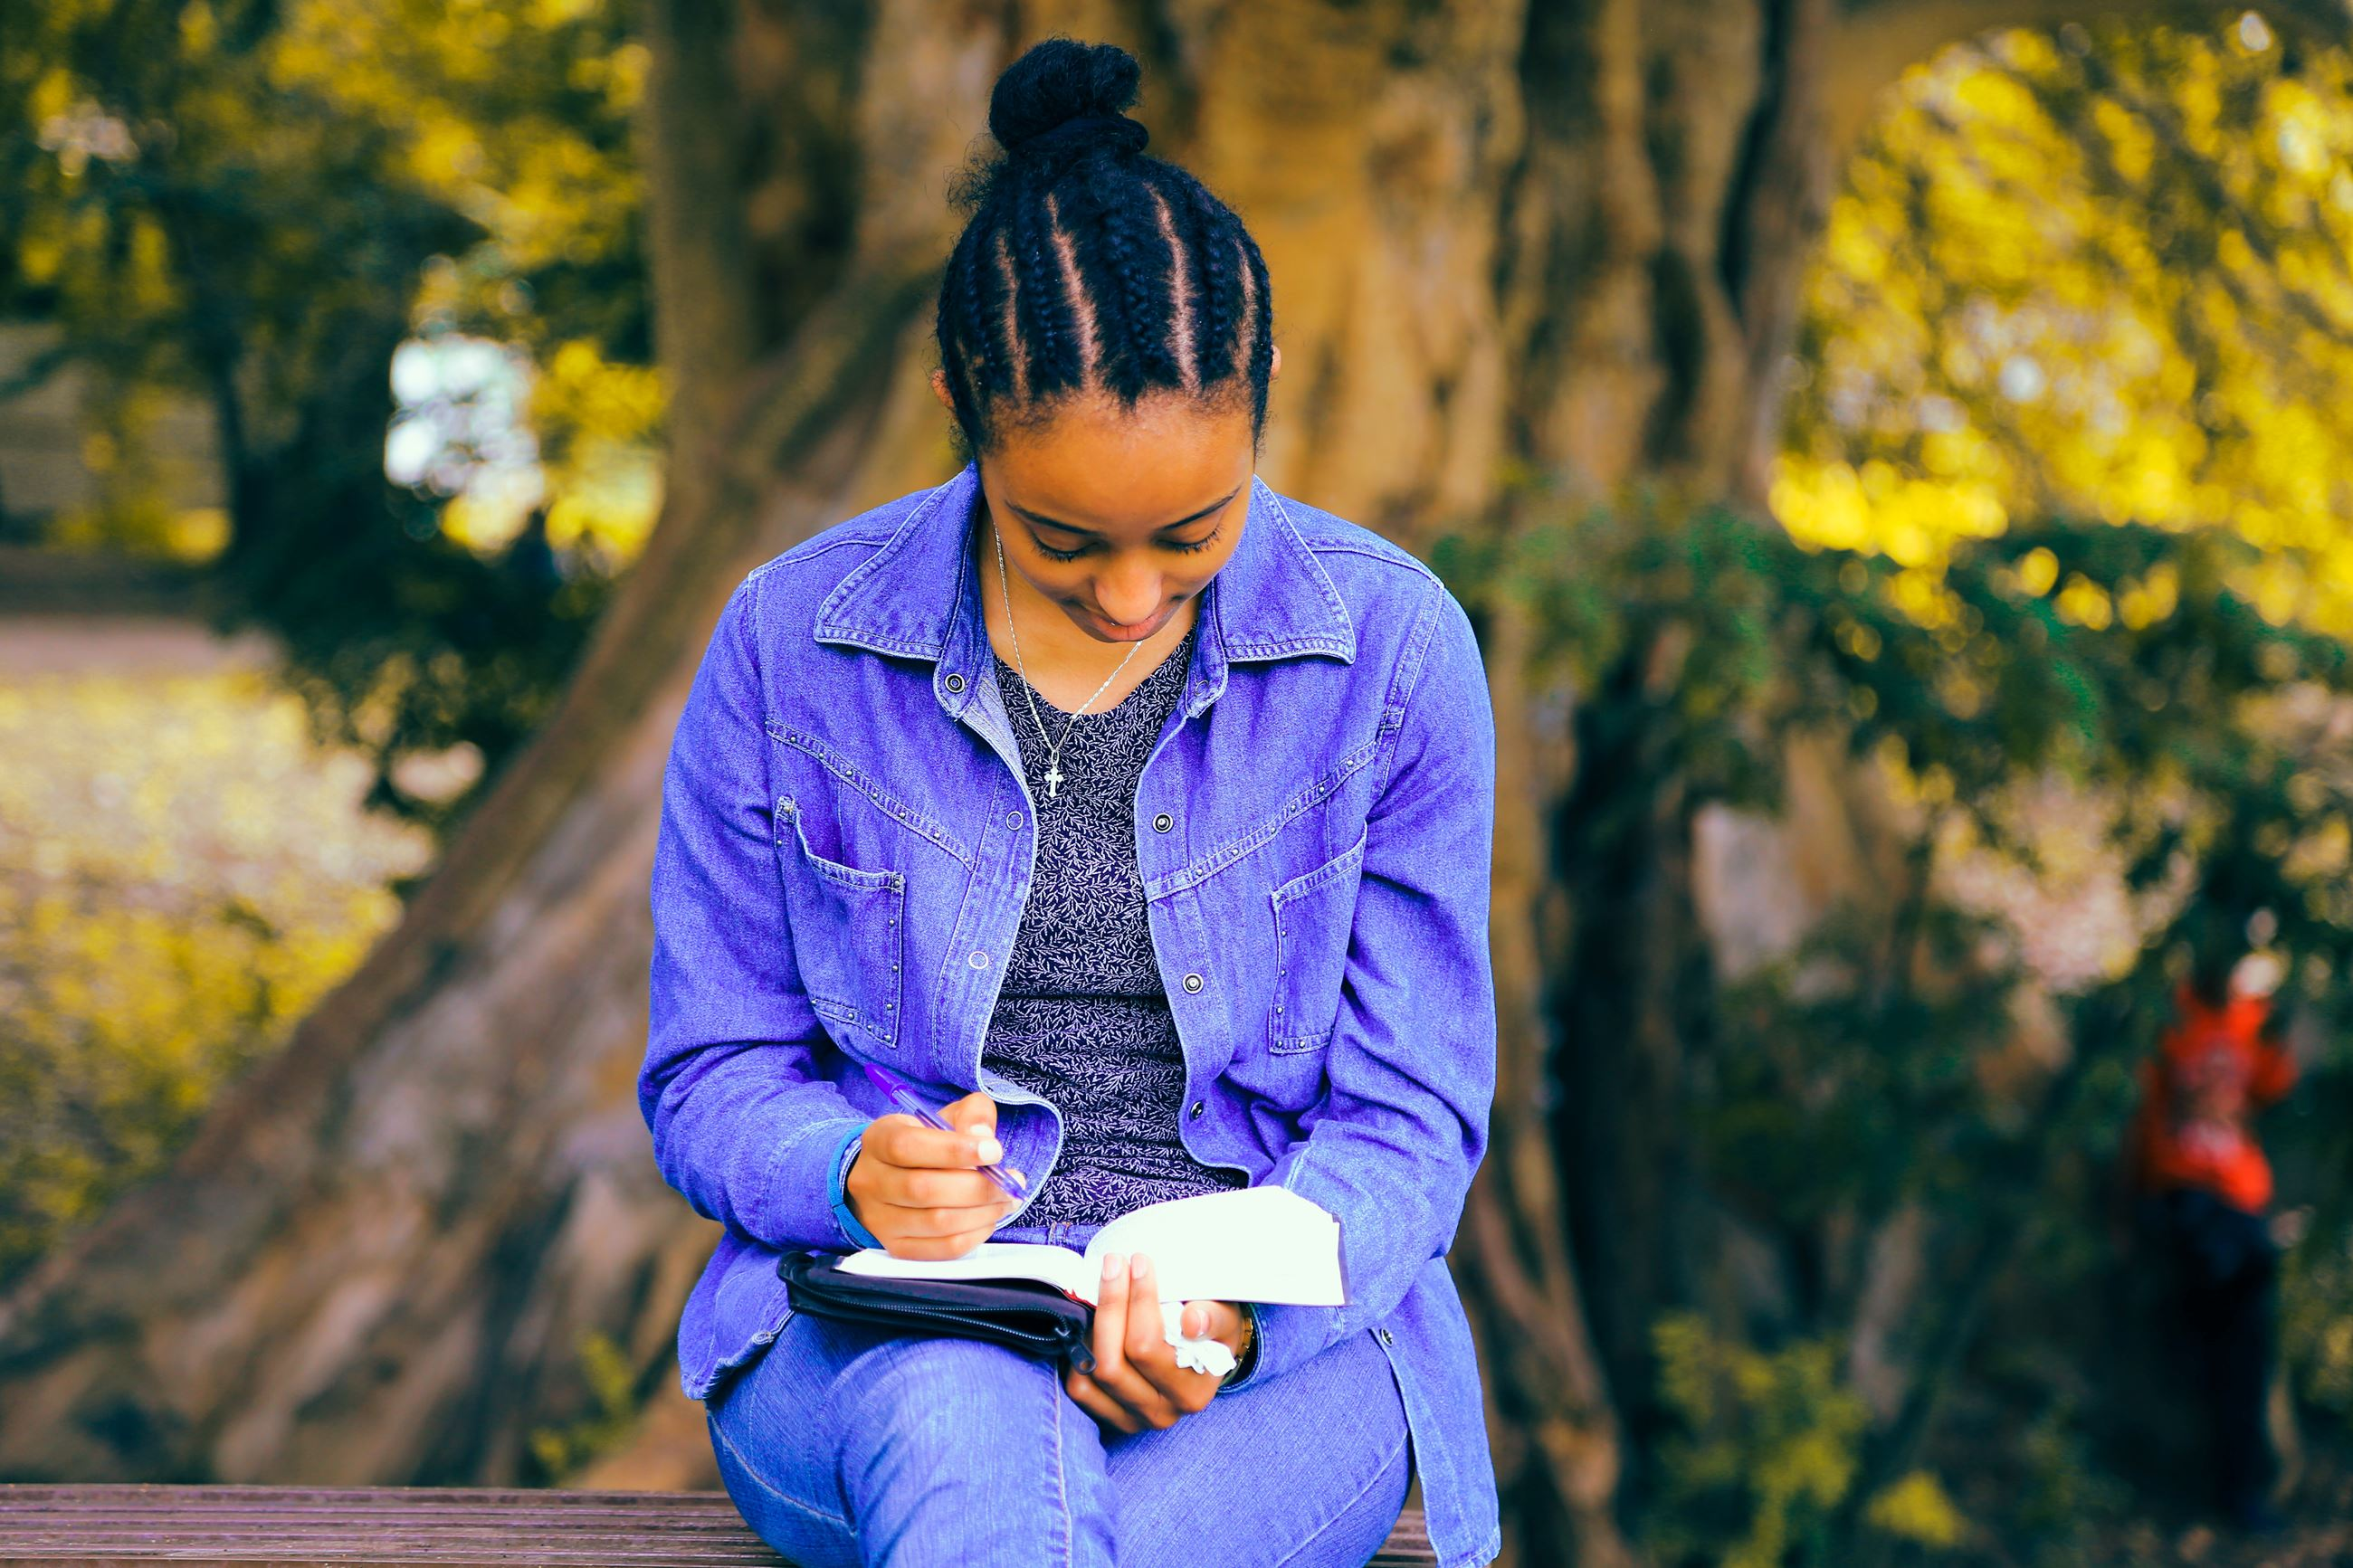 Photo by Gift Habeshaw on Unsplash. A girl writing in a journal on a park bench under a tree.